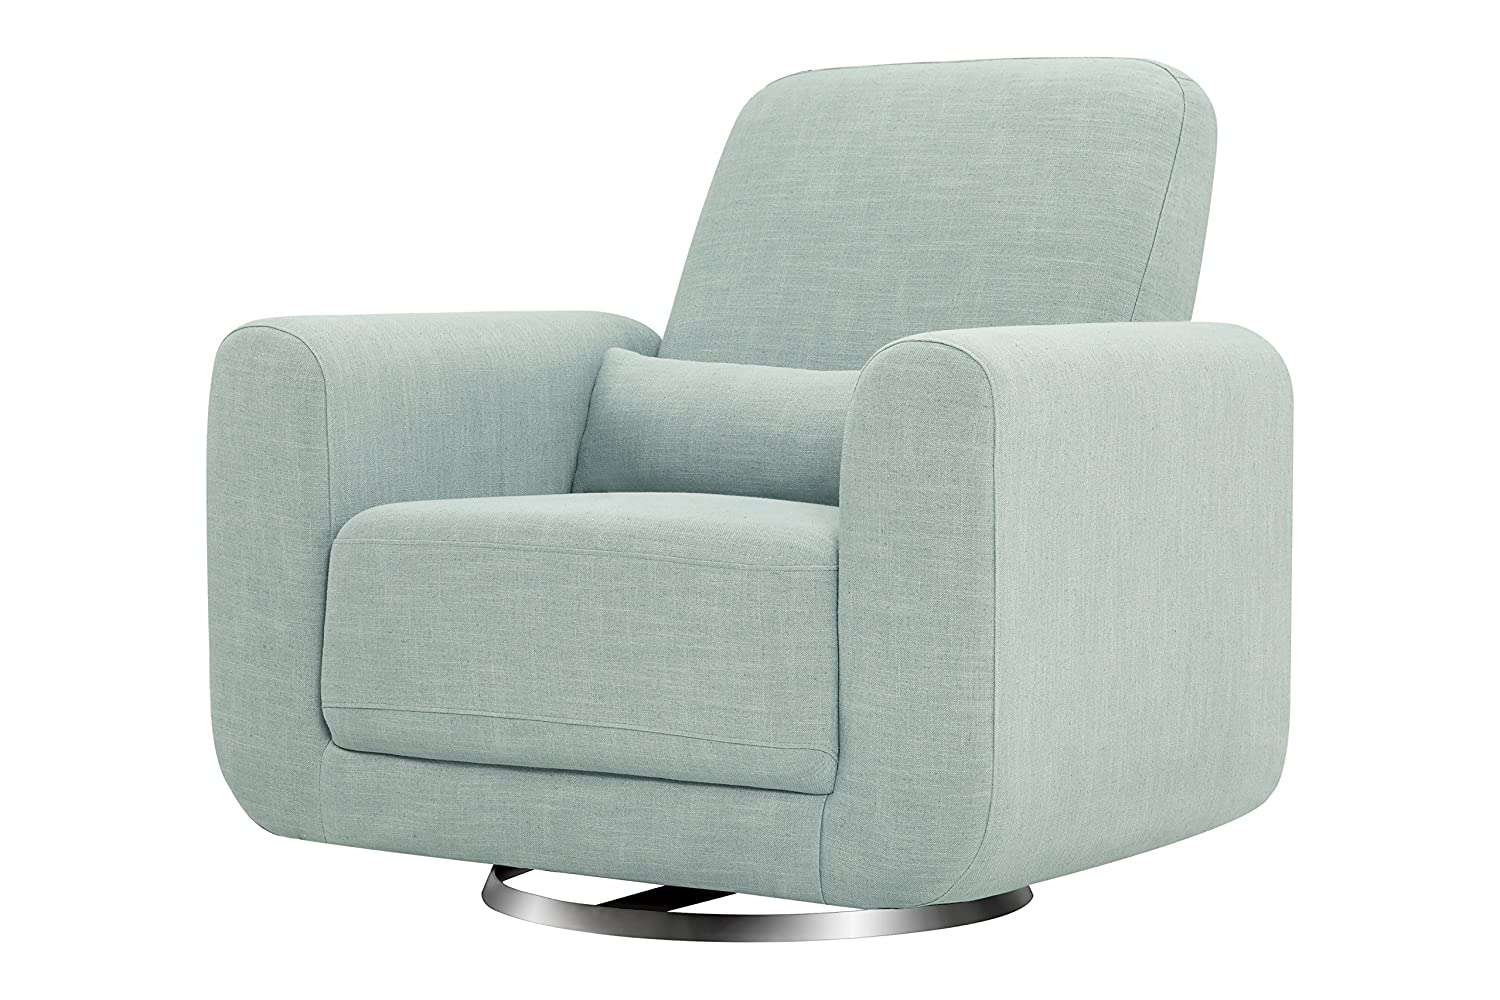 Babyletto Tuba Extra Wide Swivel Glider, Winter Grey Weave M10287GV